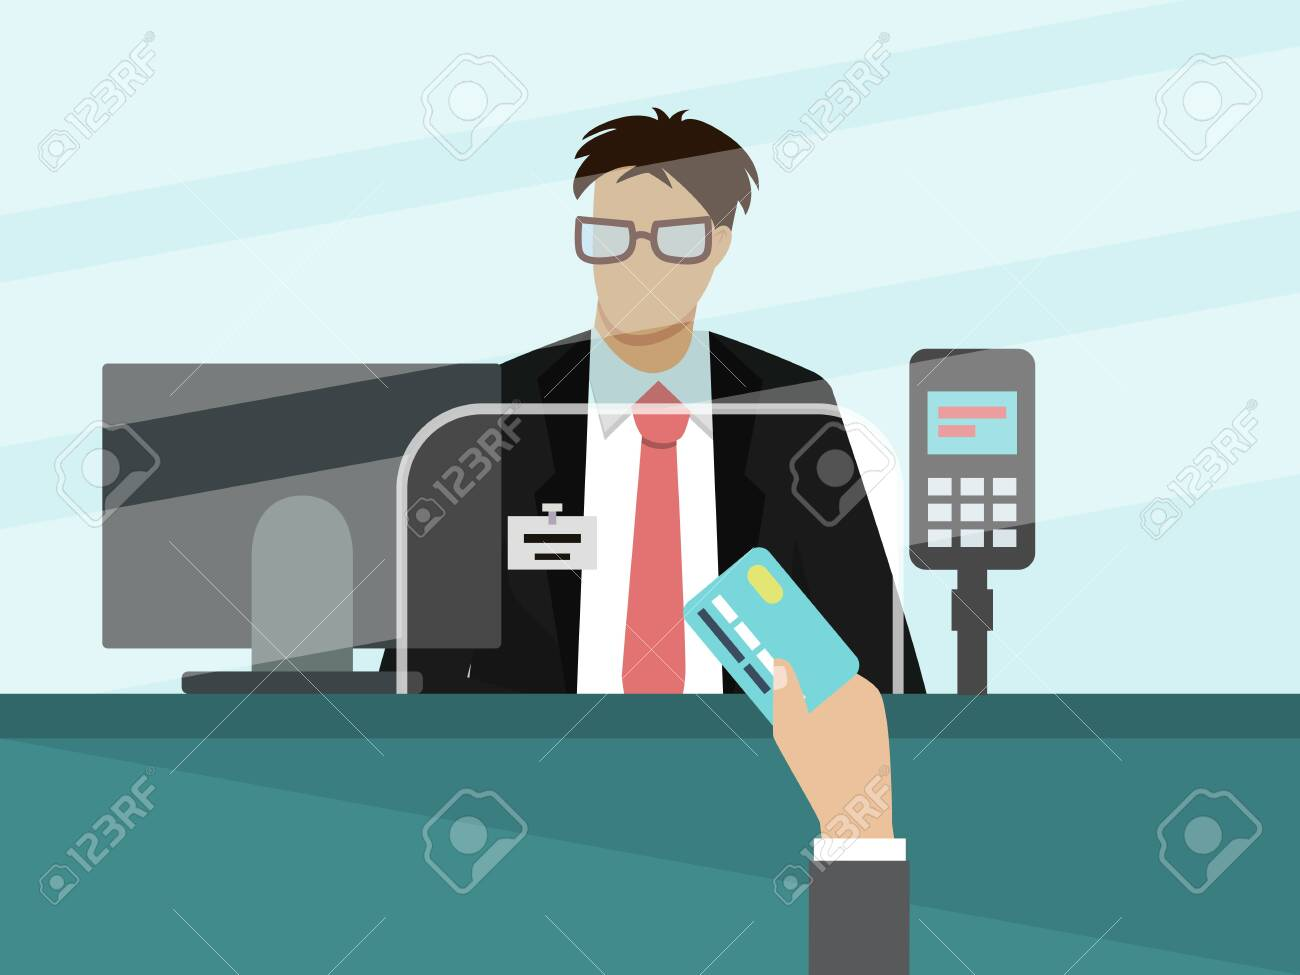 Bank cashier teller behind window vector illustration. Businessman hand with bank card for payment in front of glass. - 131721797